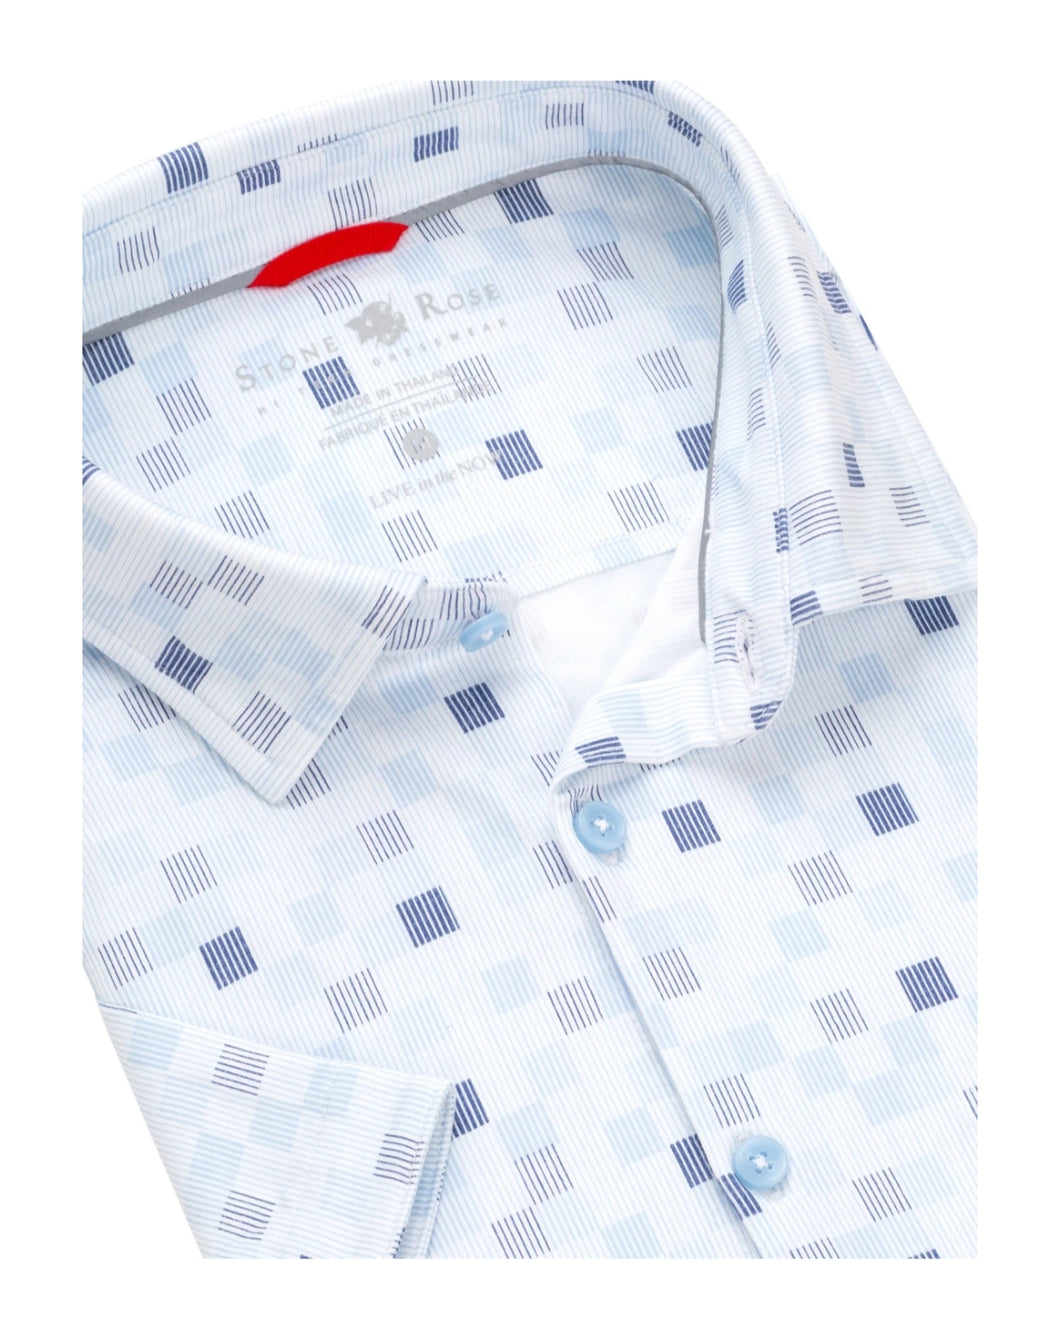 Stone Rose- short sleeve, white and blue geometrical print, knit shirt